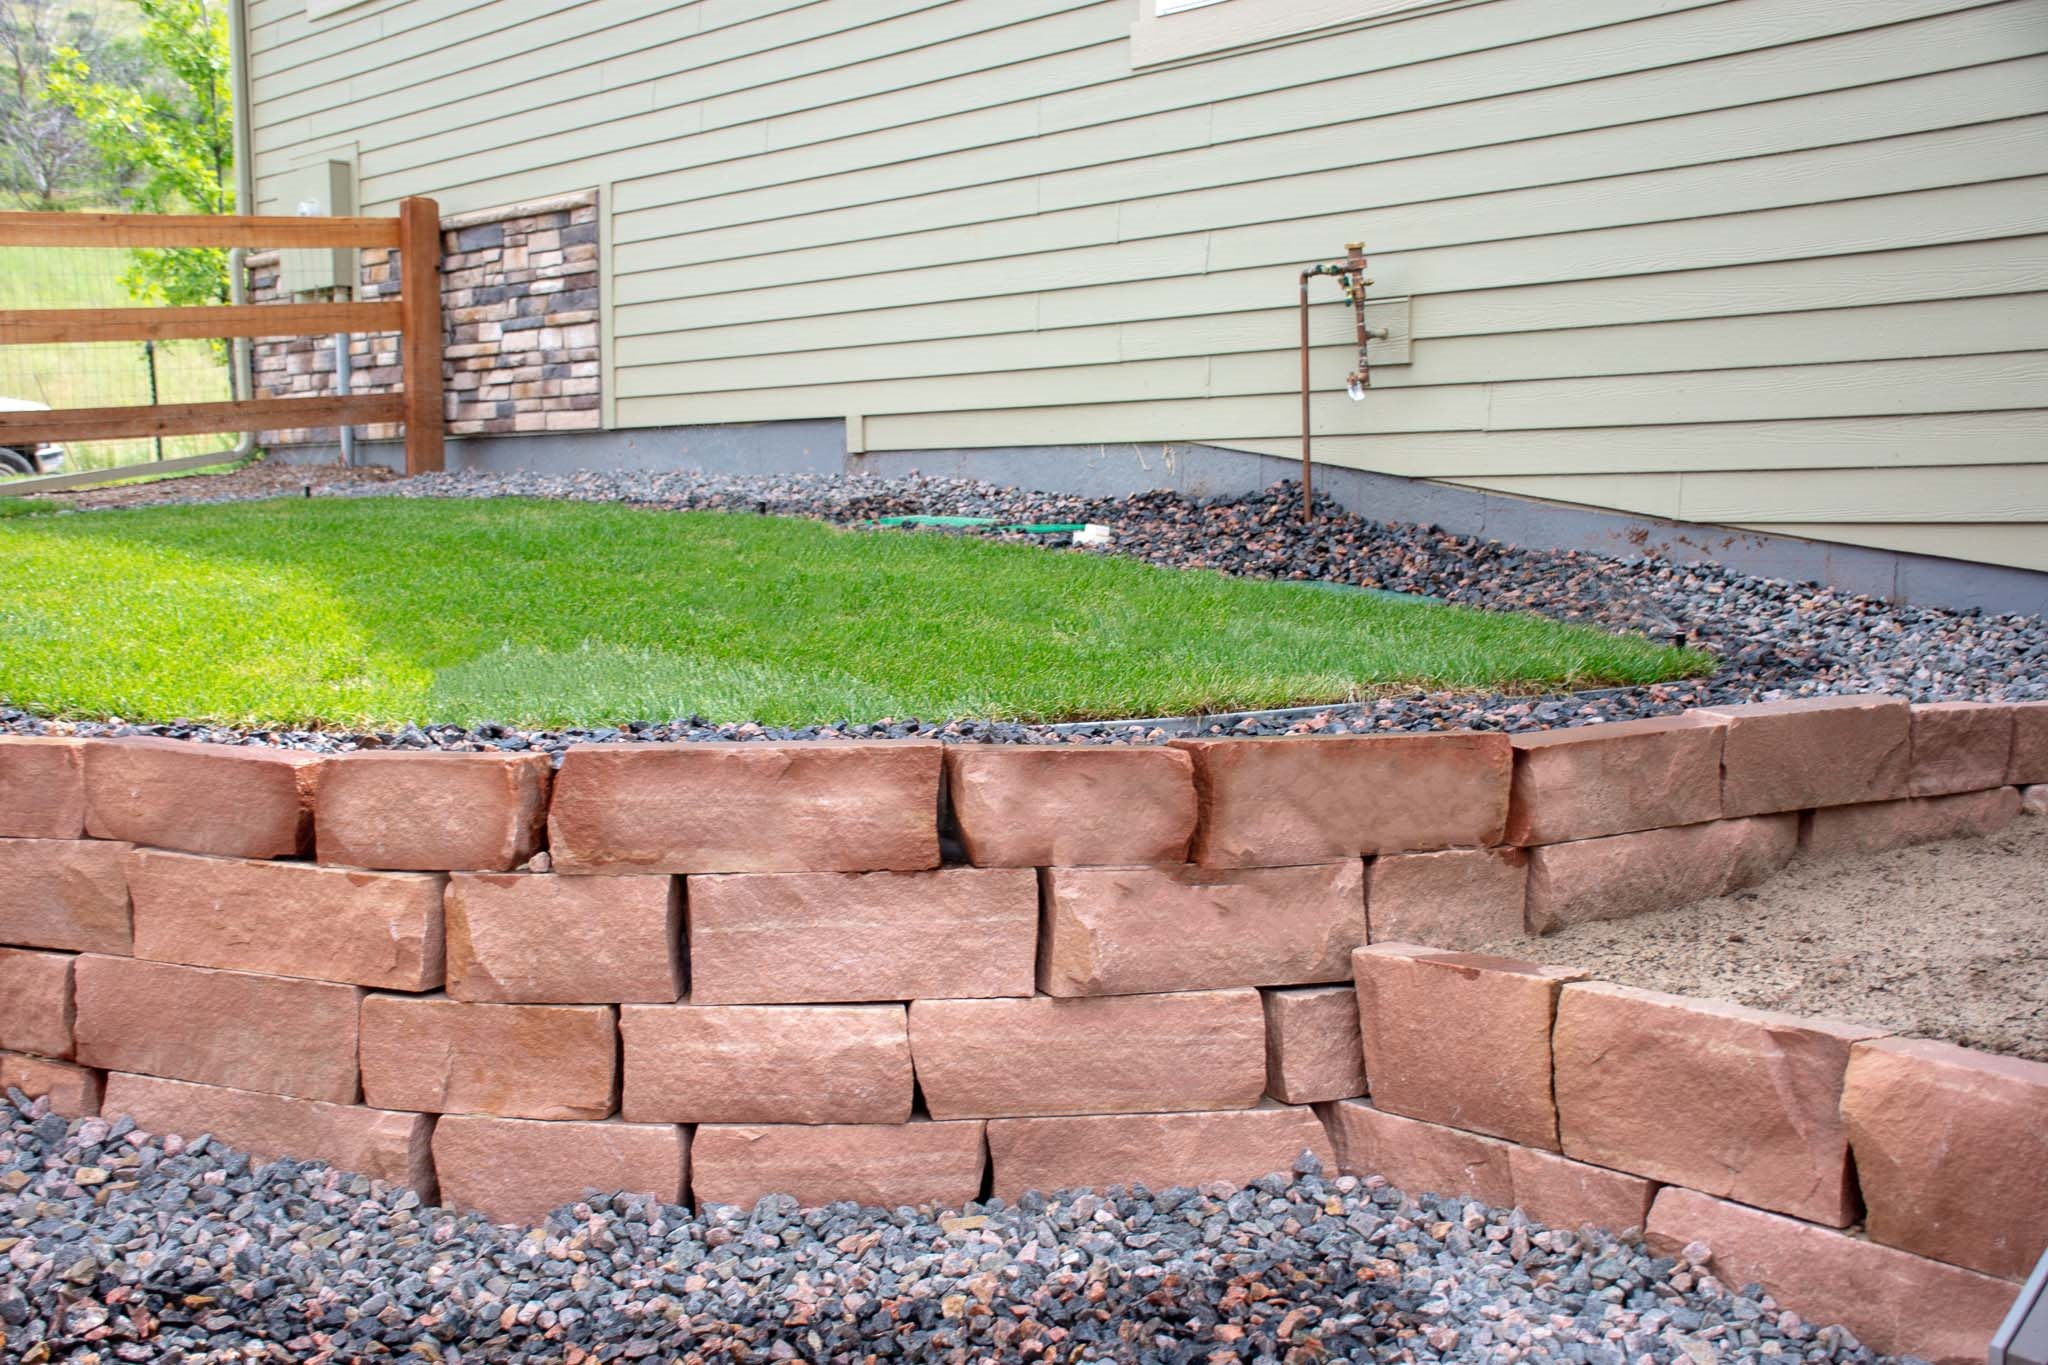 Natural style retaining wall - Lyons, CO 2019